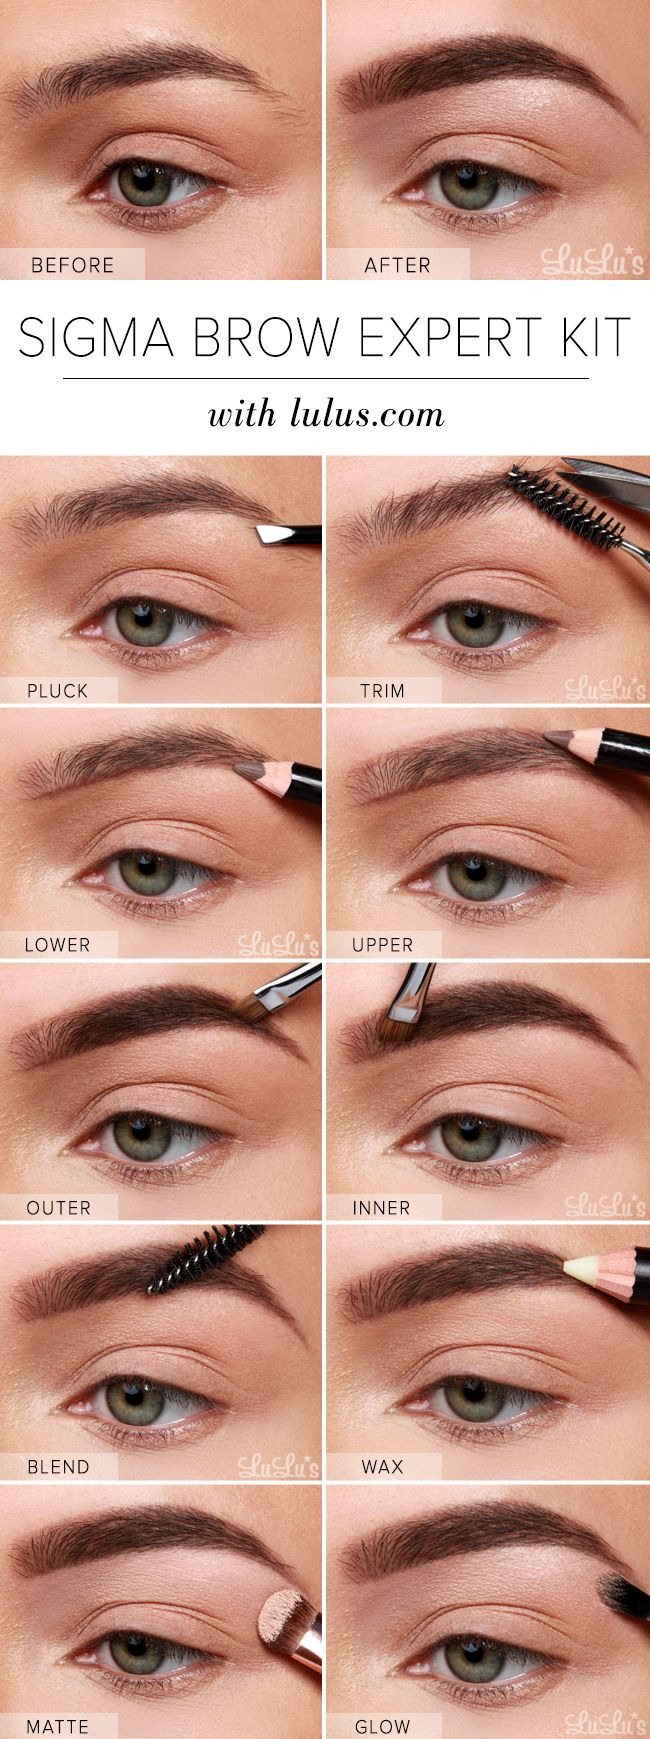 Lulus How-To: Sigma Brow Expert Kit Eyebrow Tutorial at LuLus.com!